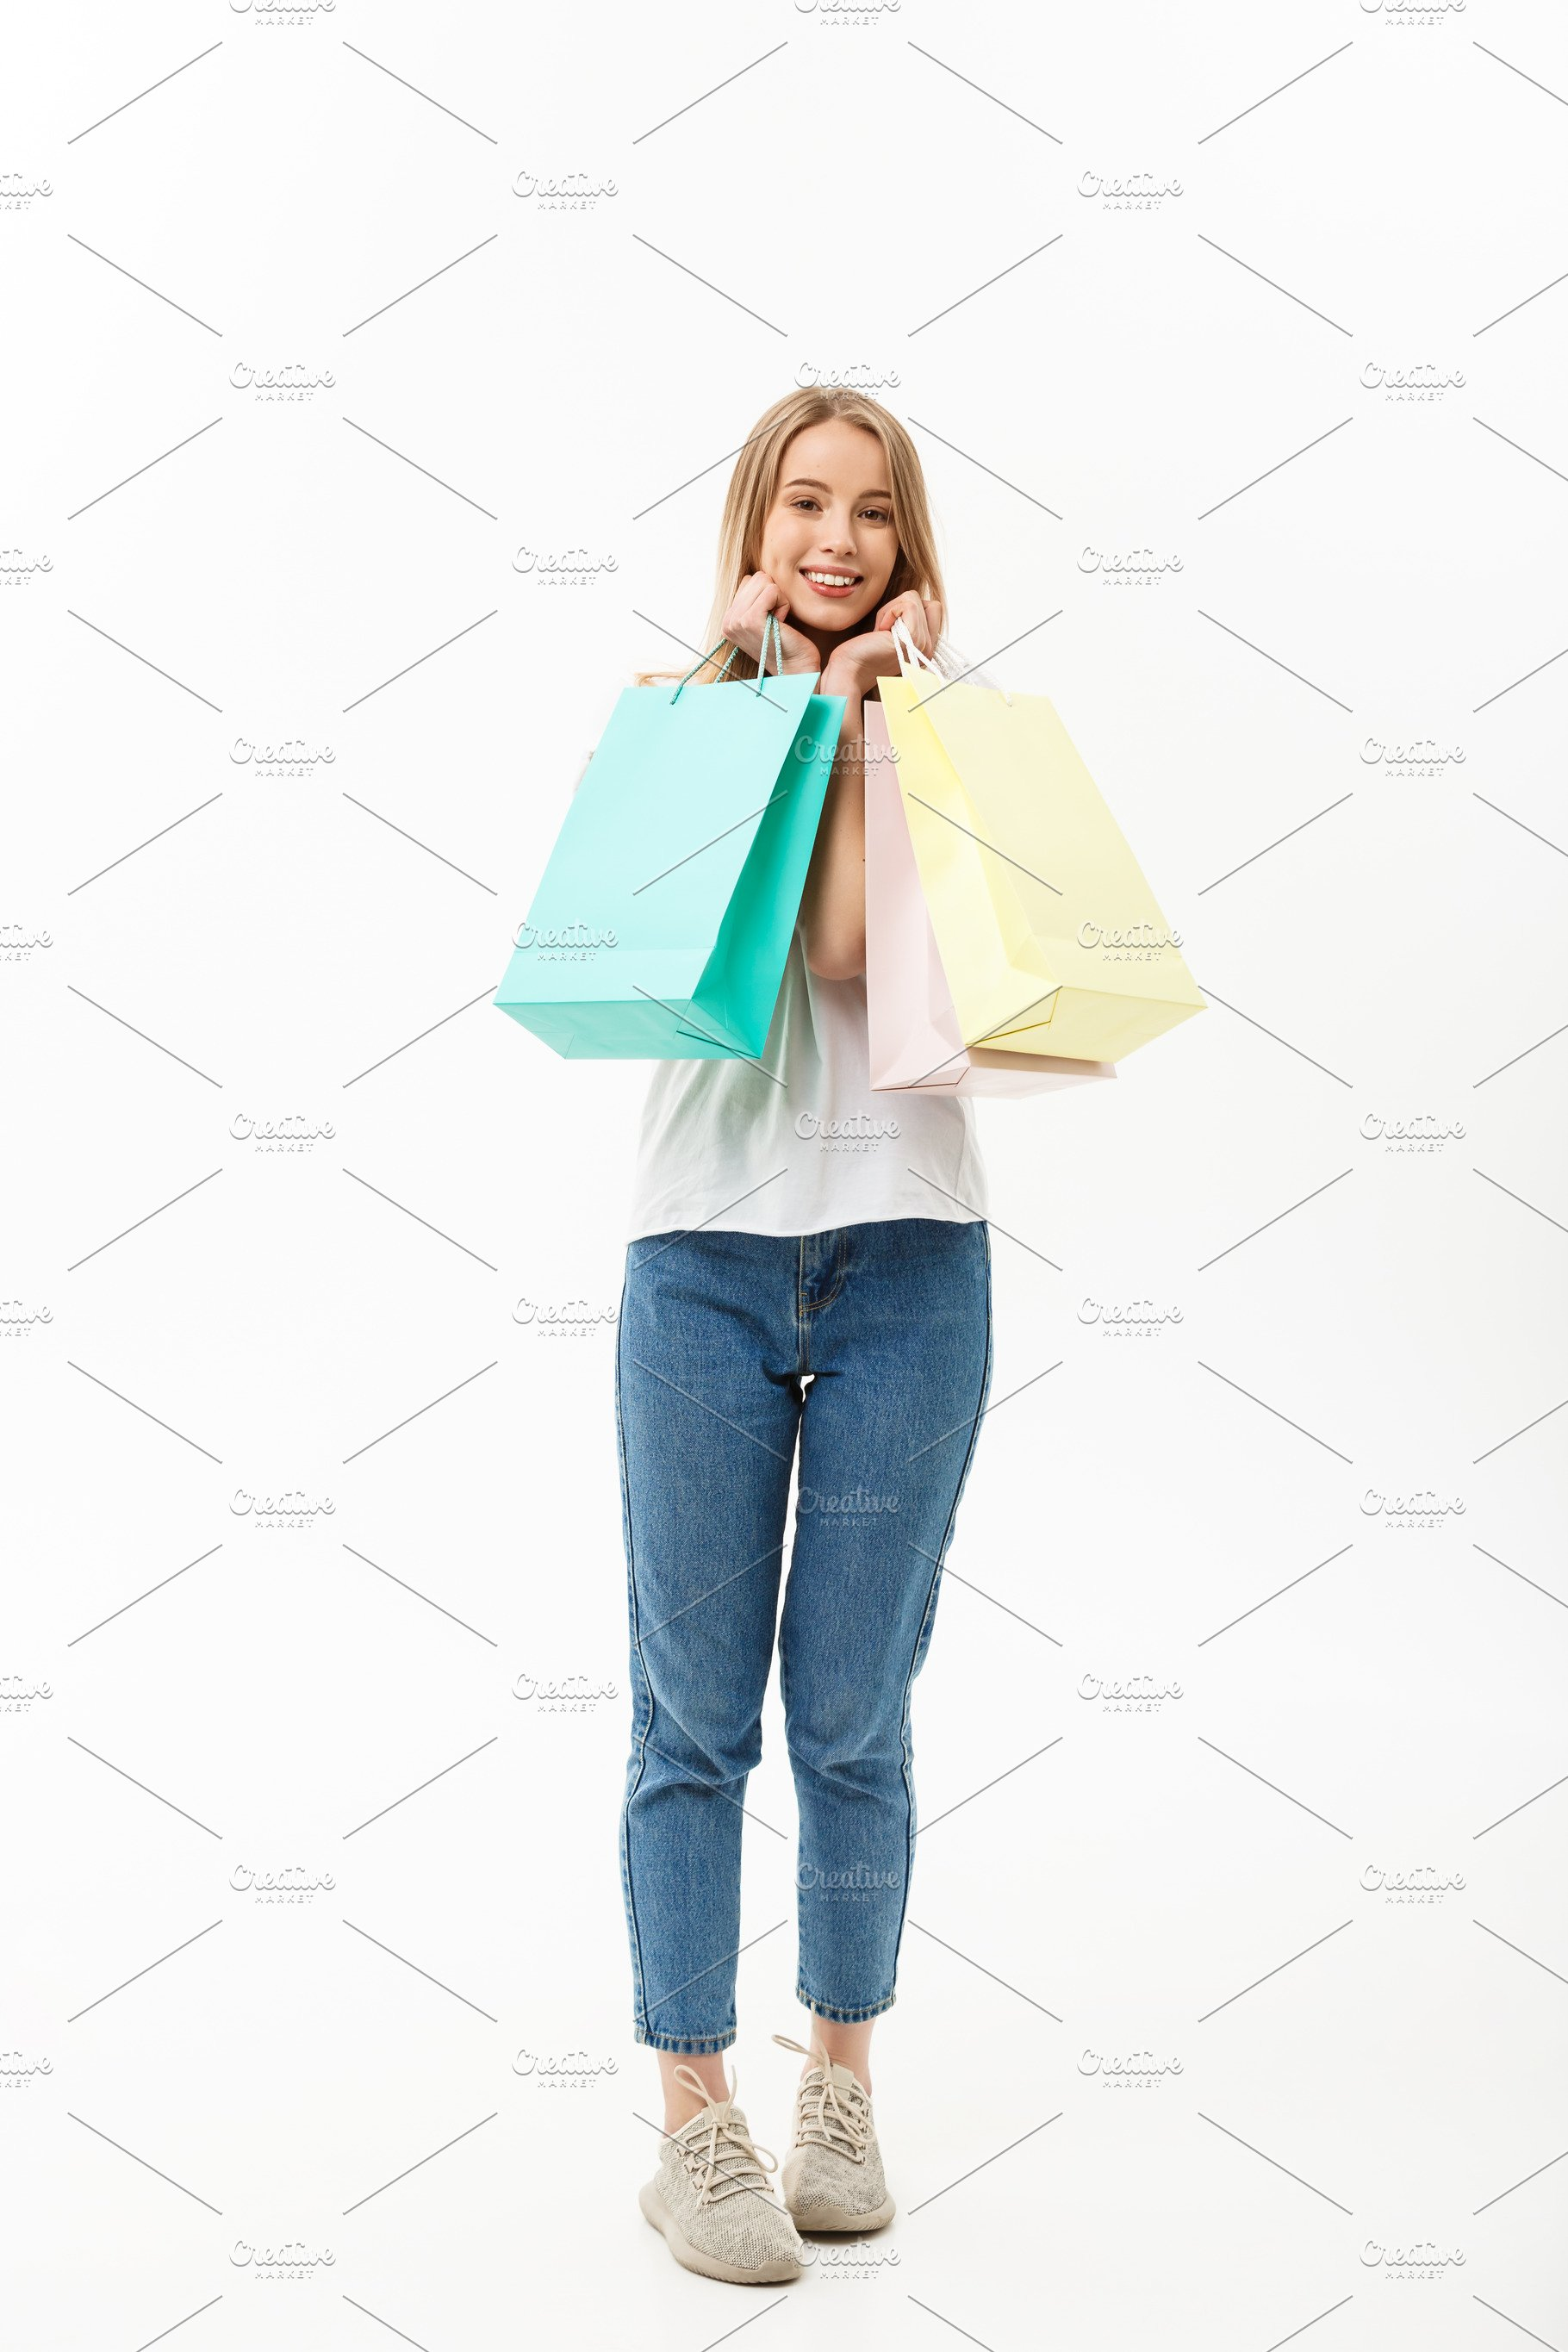 975523f73dbd7 Full length of Shopper woman holding shopping bags standing happy ...